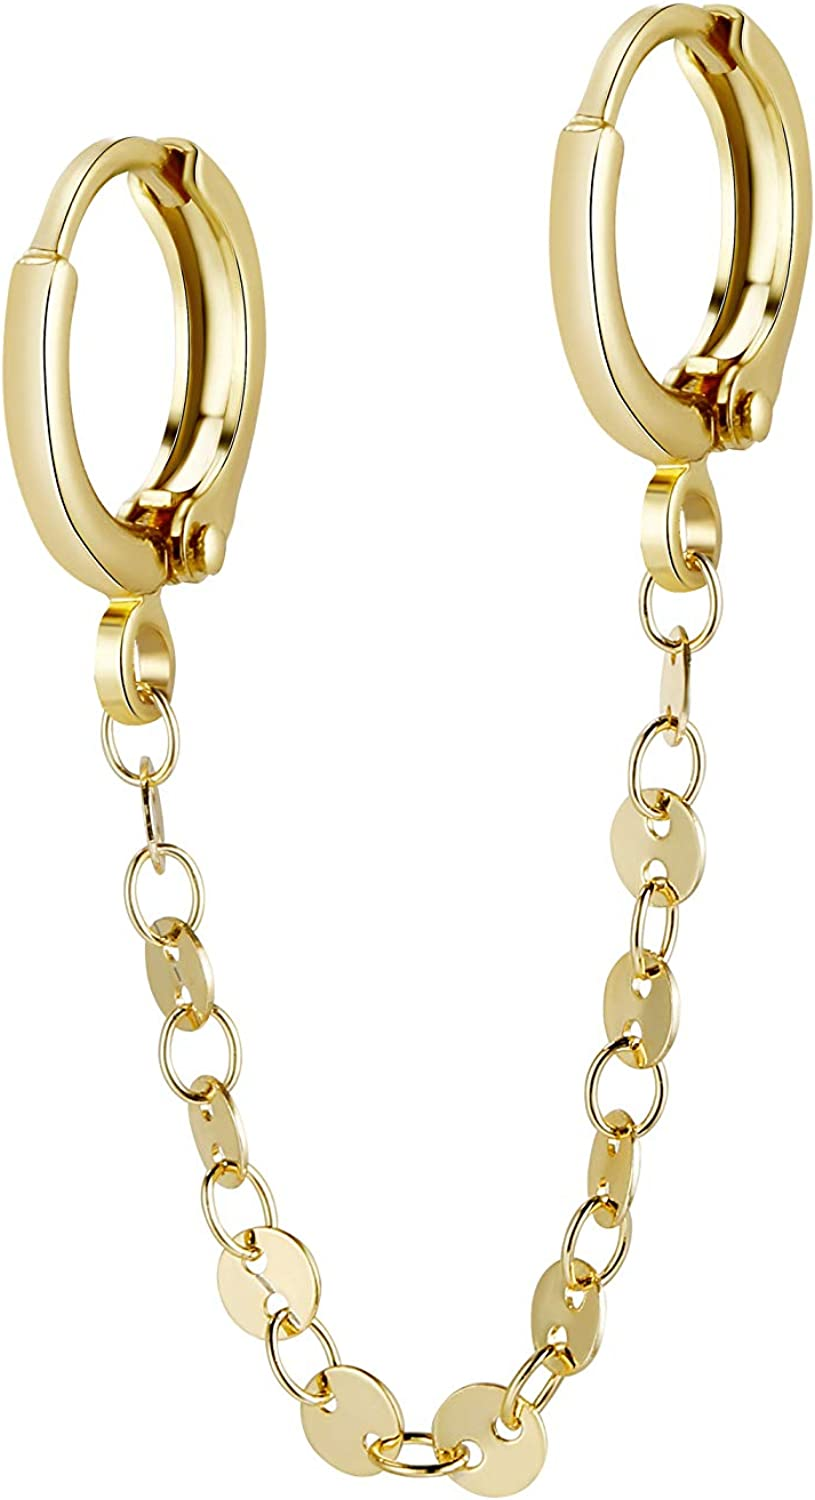 CHESKY 14K Gold Plated Zirconia Earrings Fashion Hoop Pi Double Handcuff Popularity